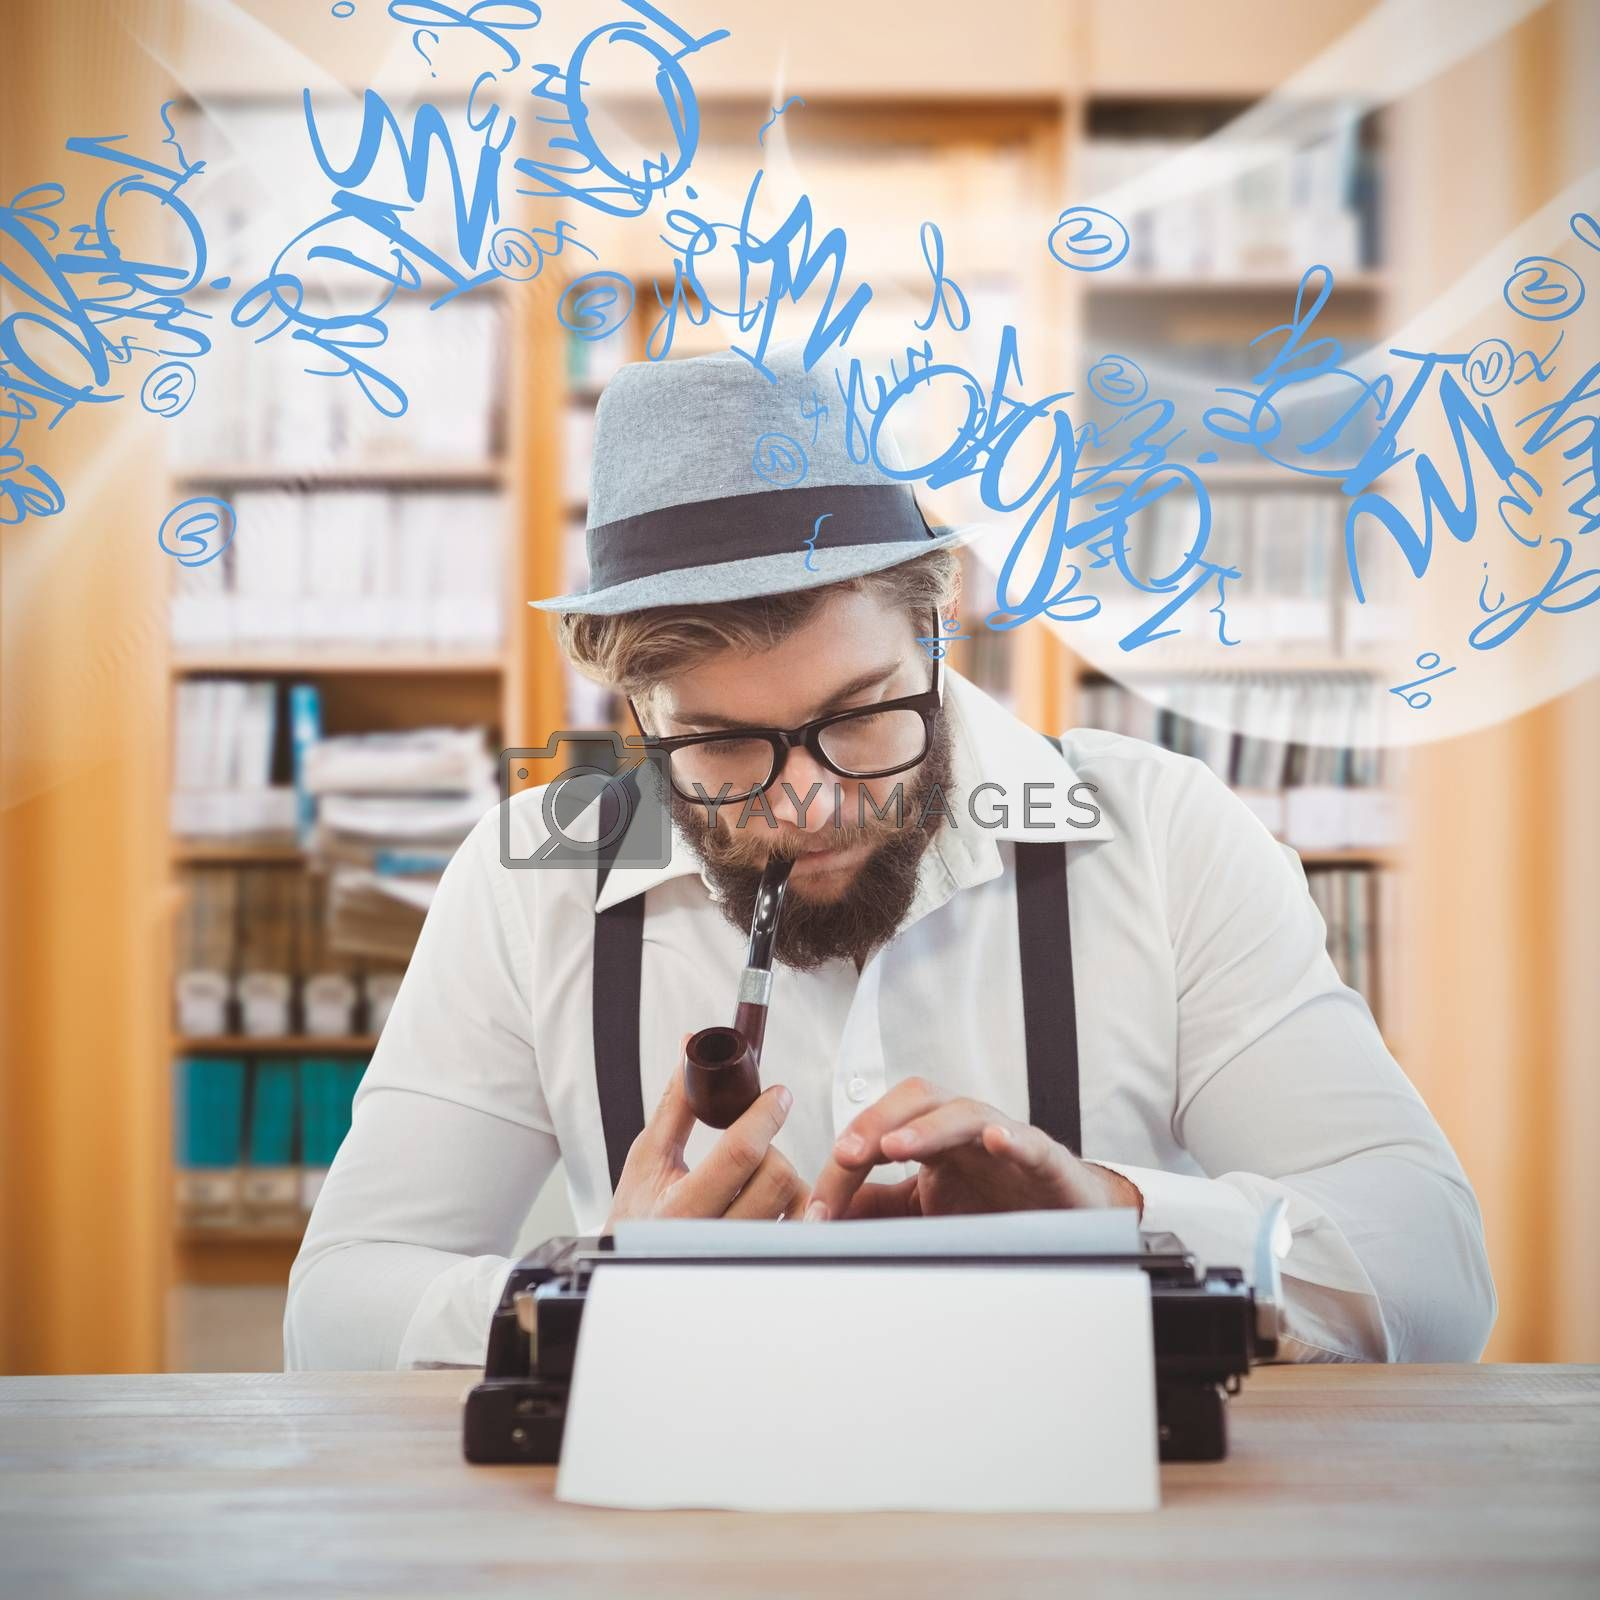 Hipster smoking pipe while working at desk against library